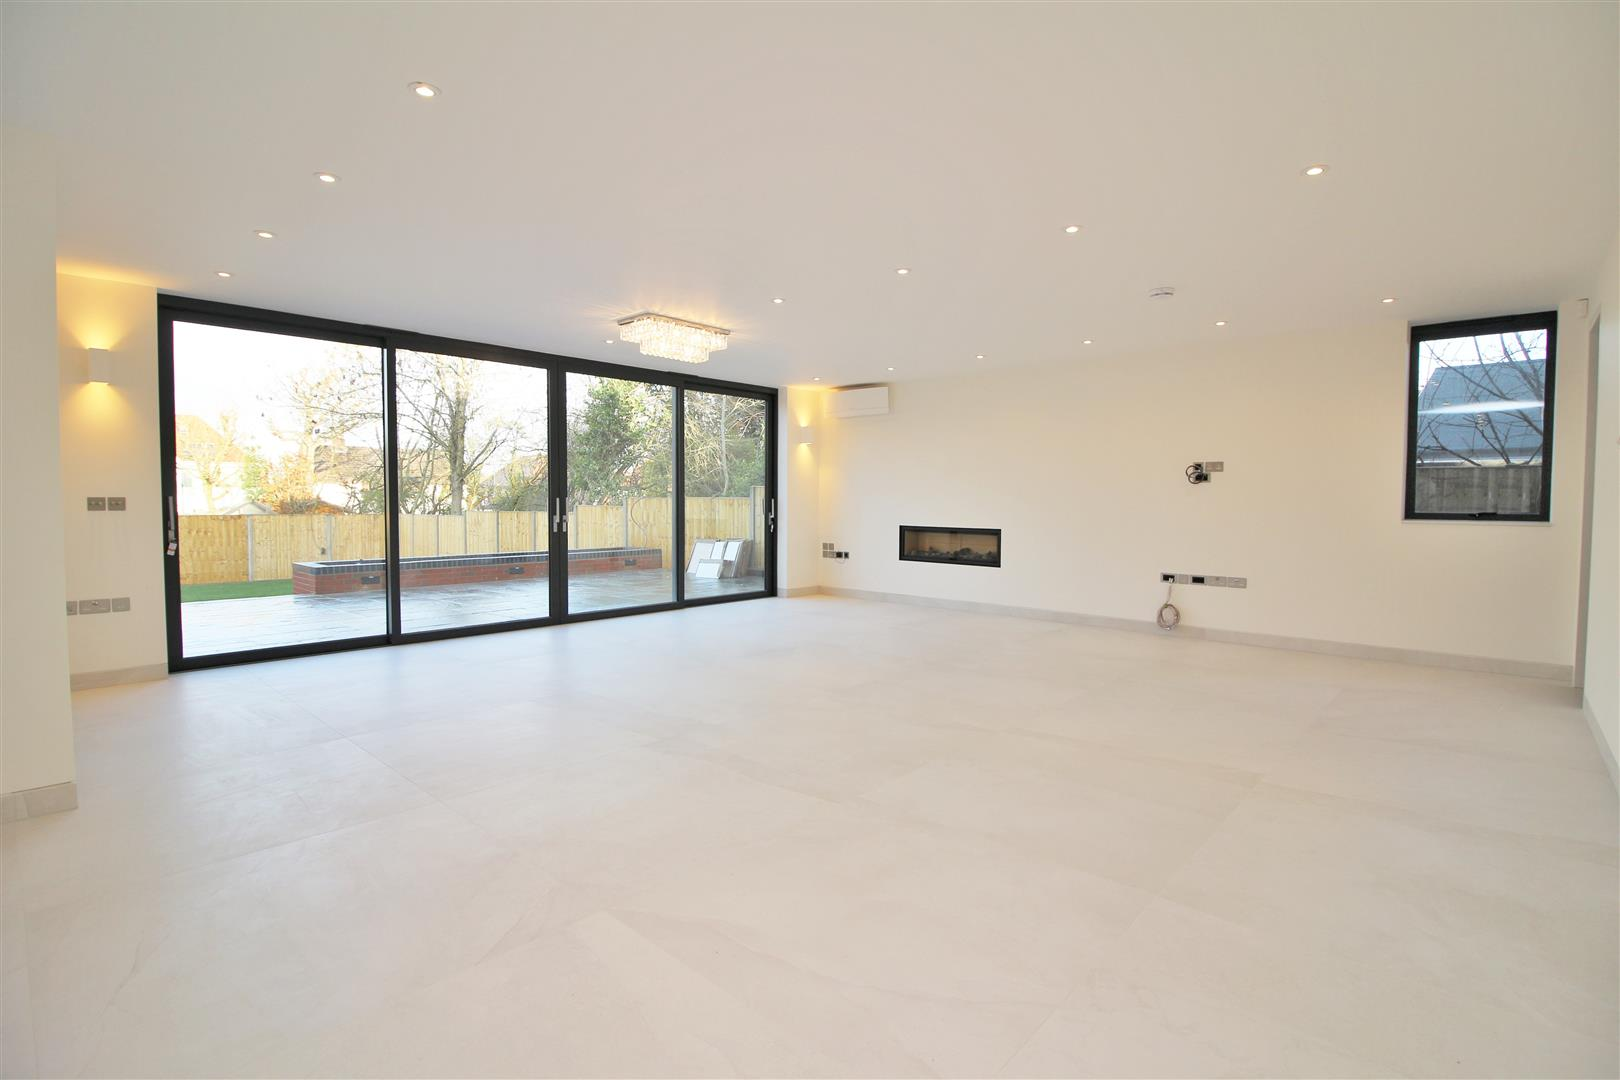 7 bed to rent - (Property Image 1)